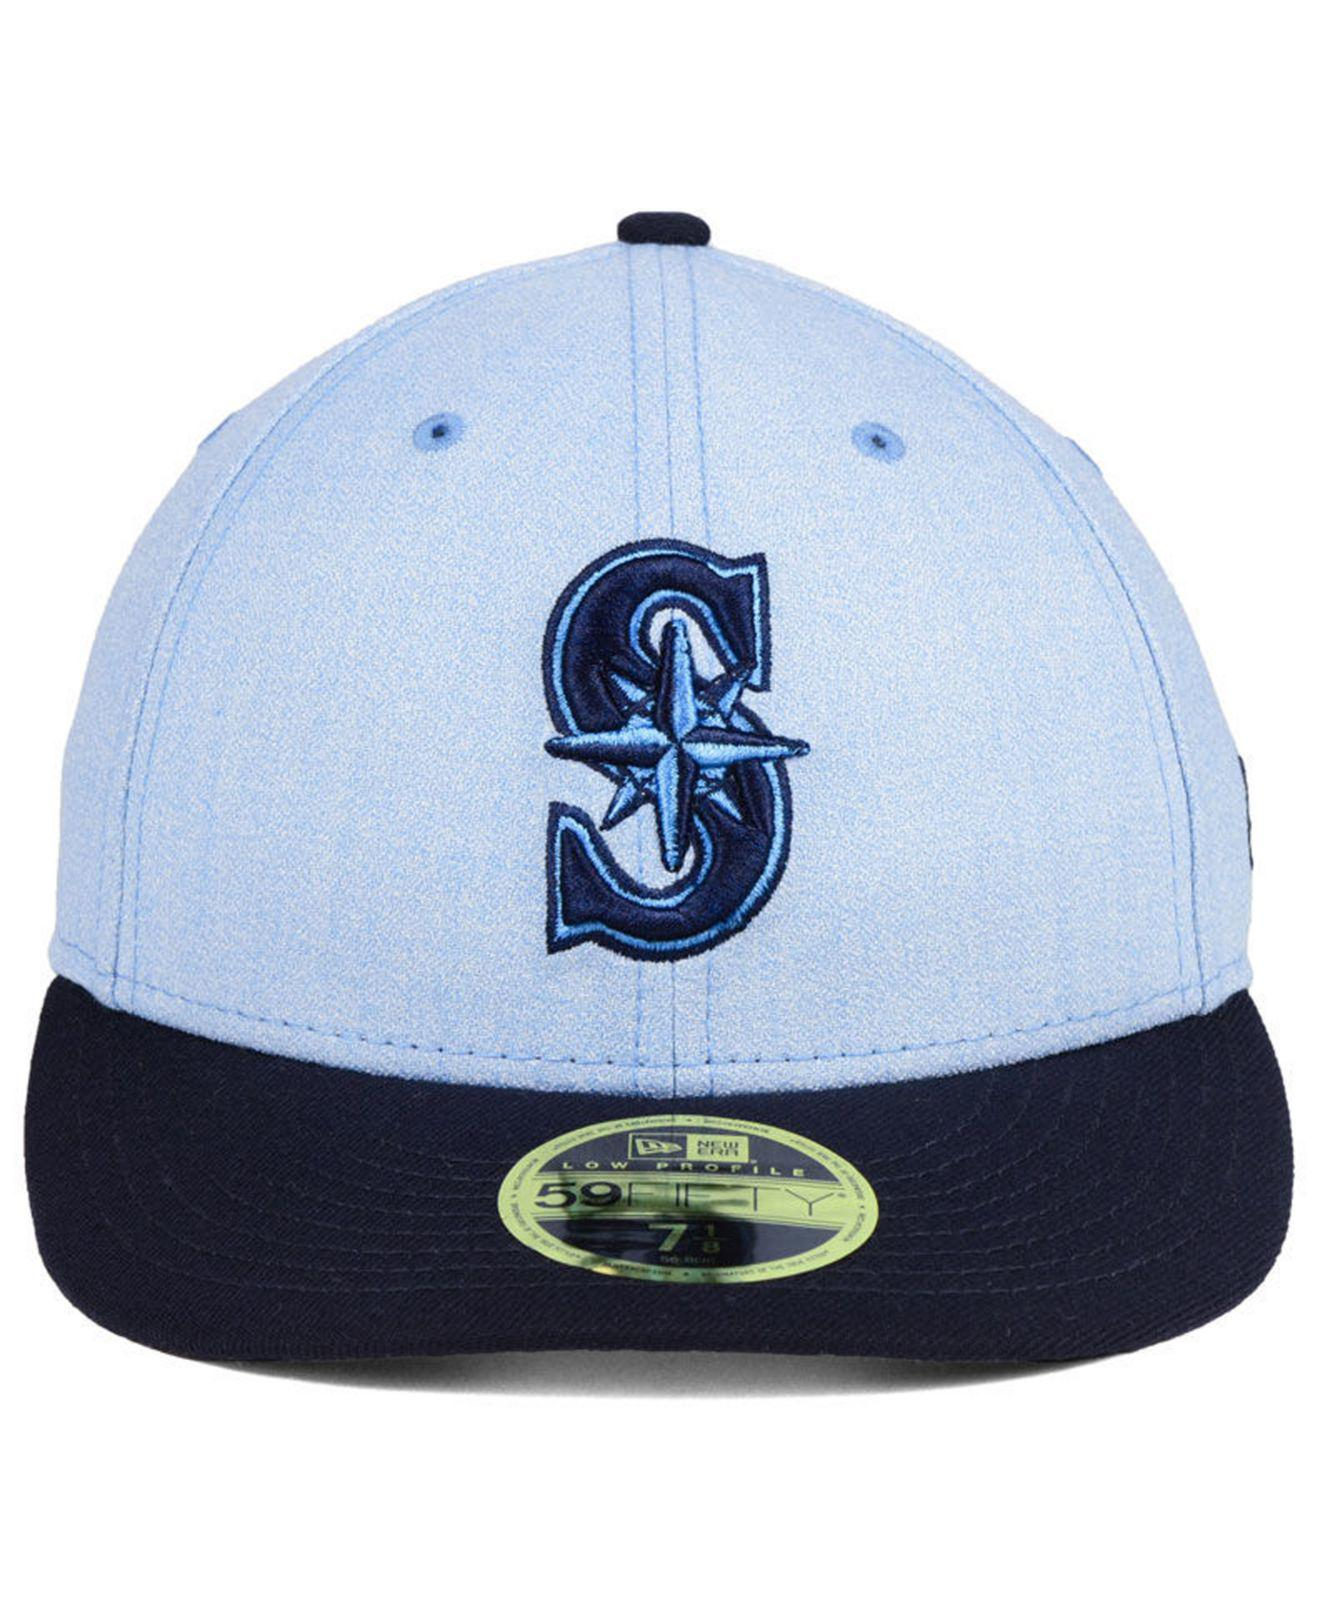 sale retailer 57df9 7f76e ... top quality lyst ktz seattle mariners fathers day low profile 59fifty  cap in blue for men